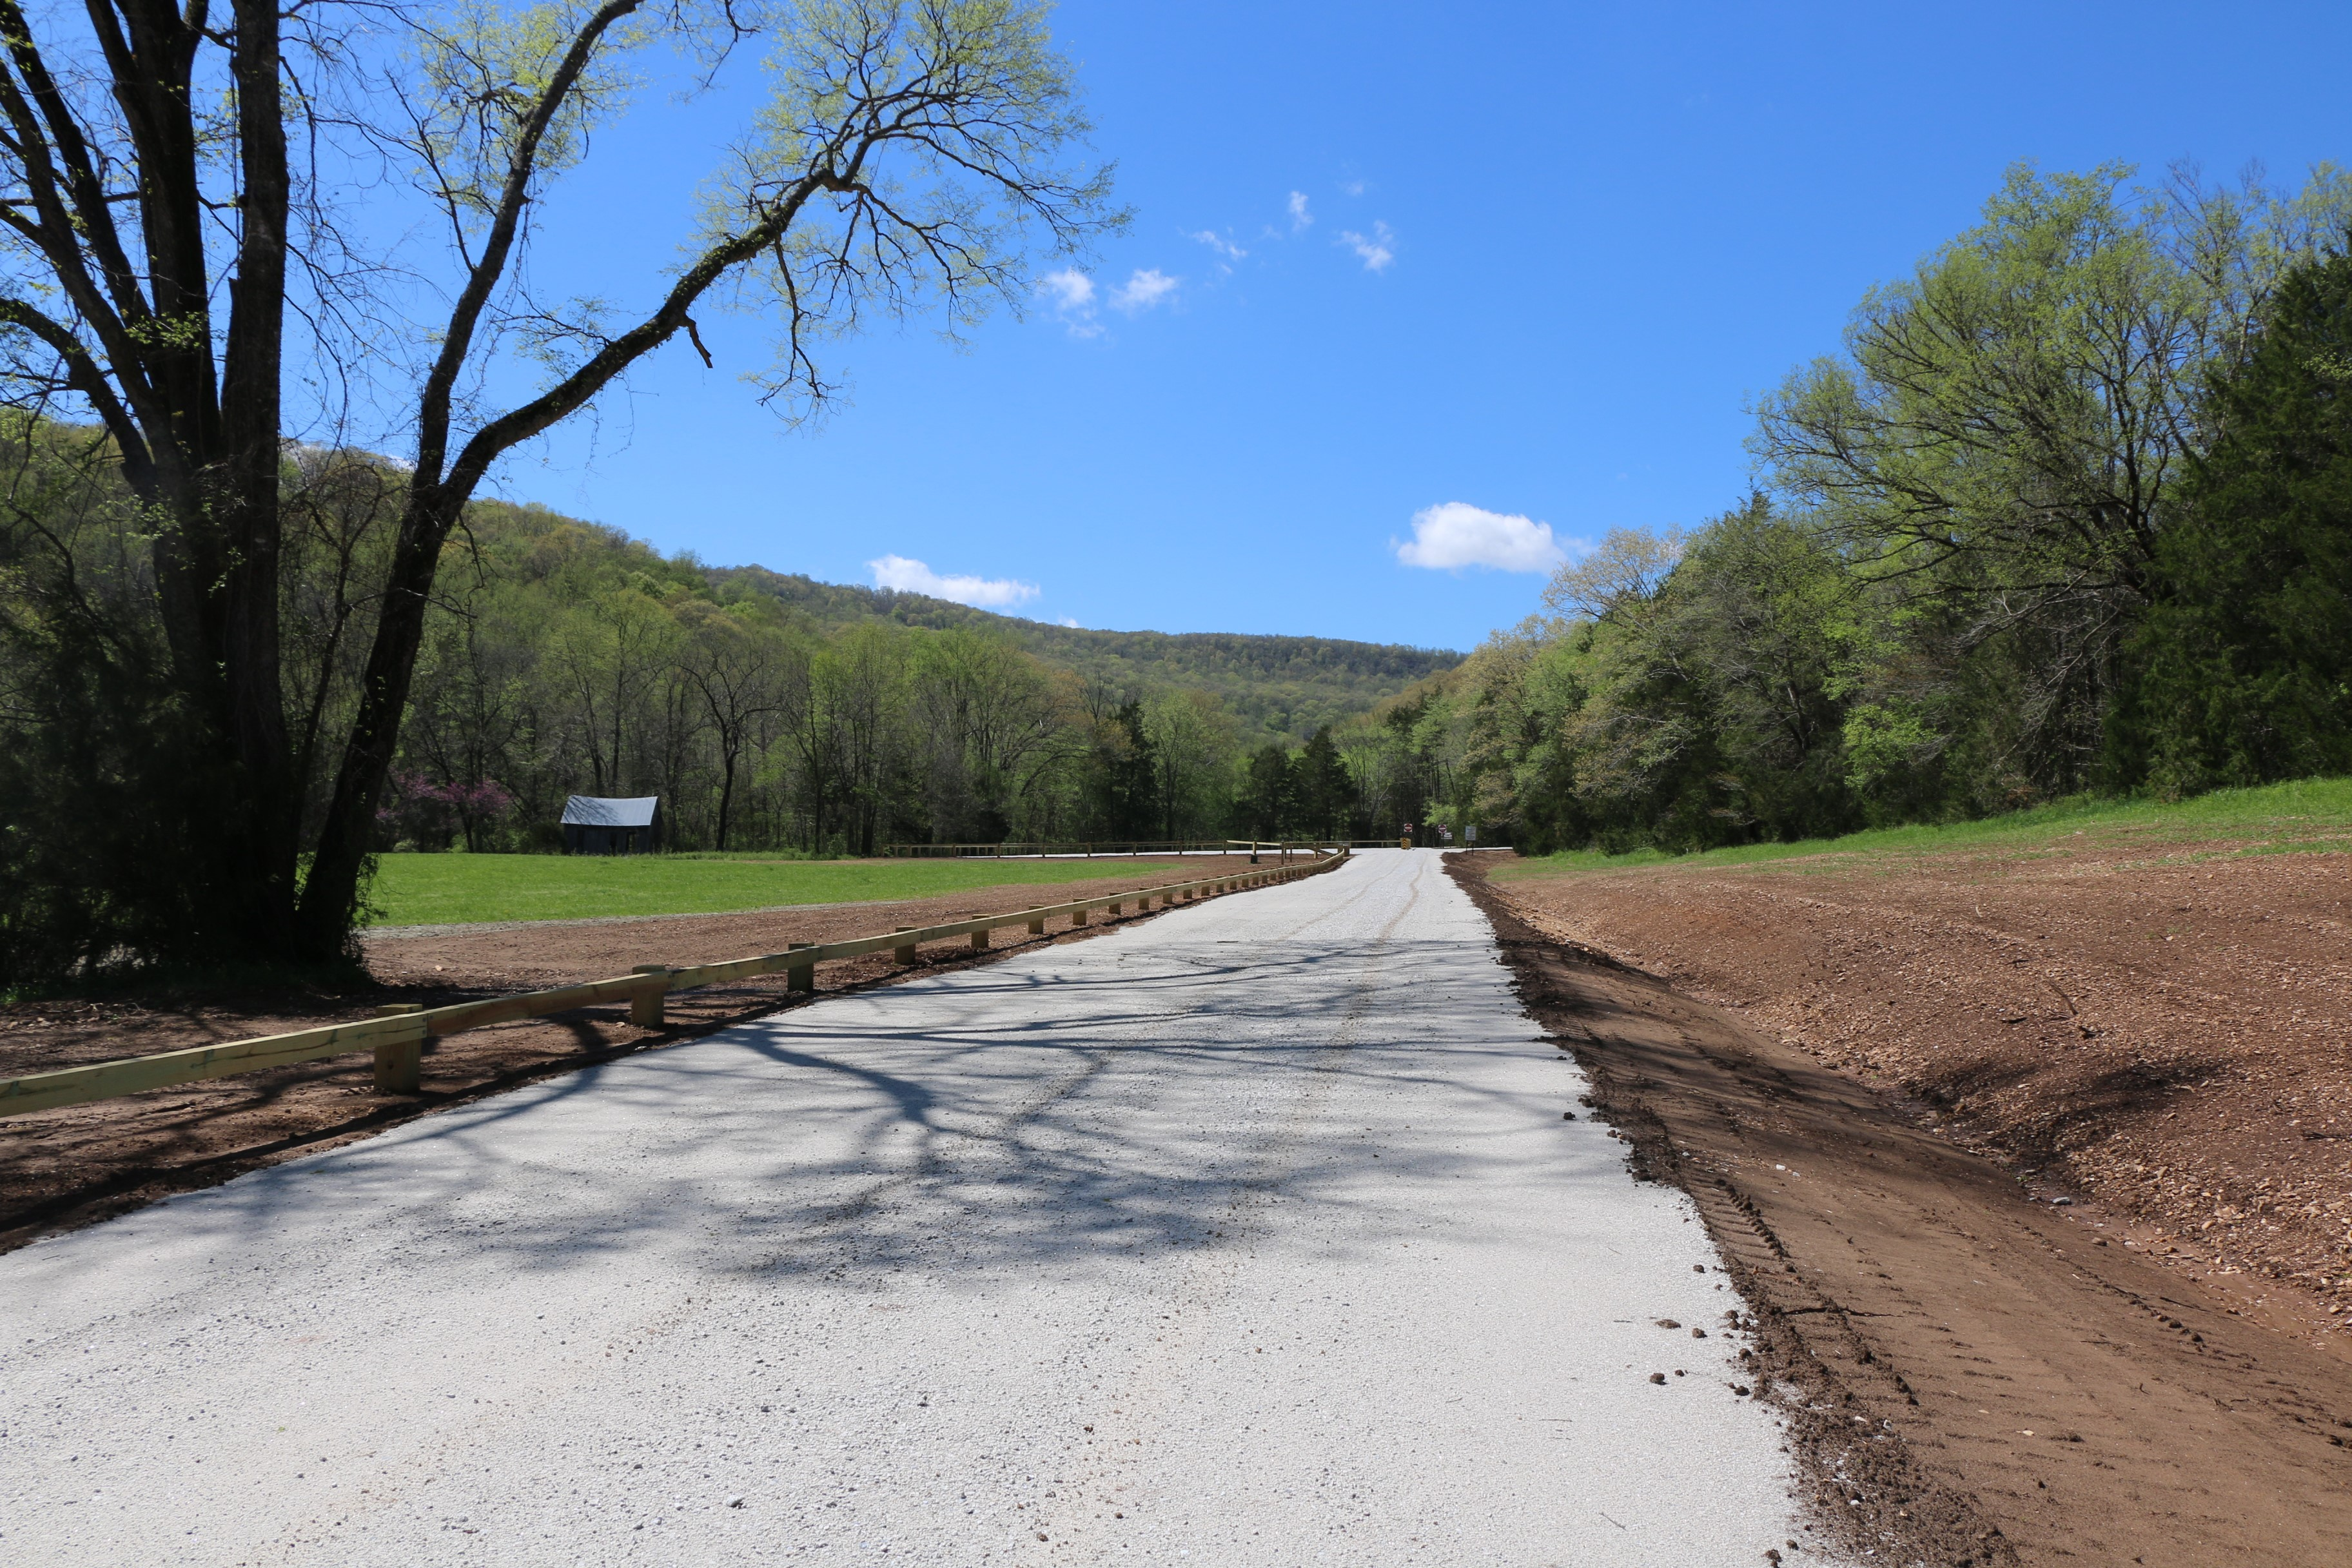 The new Lost Valley entrance road and parking lot were constructed outside of Clark Creek's flood zone. Photo: Madison West/NPS